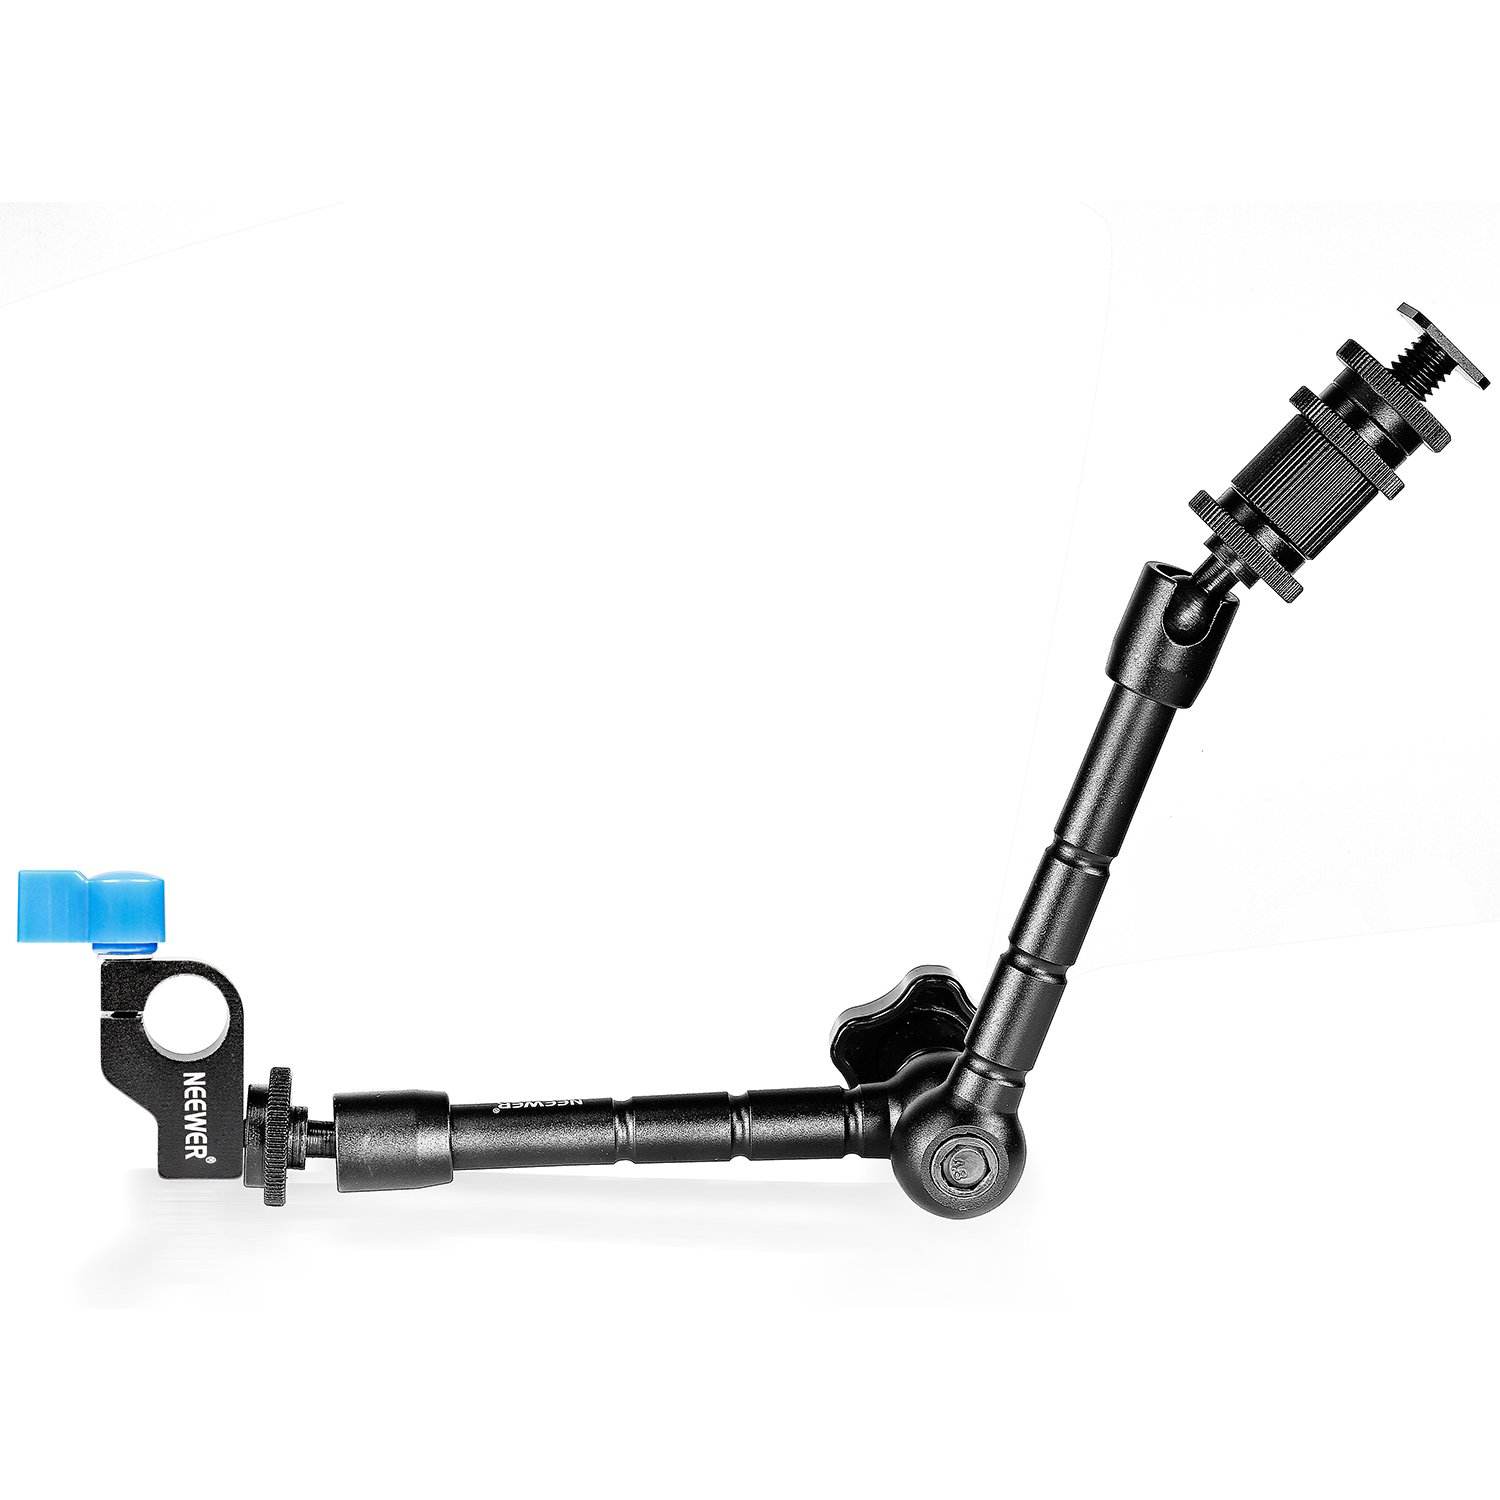 Neewer 30cm/11.8inch Aluminum Alloy Articulating Magic Arm.